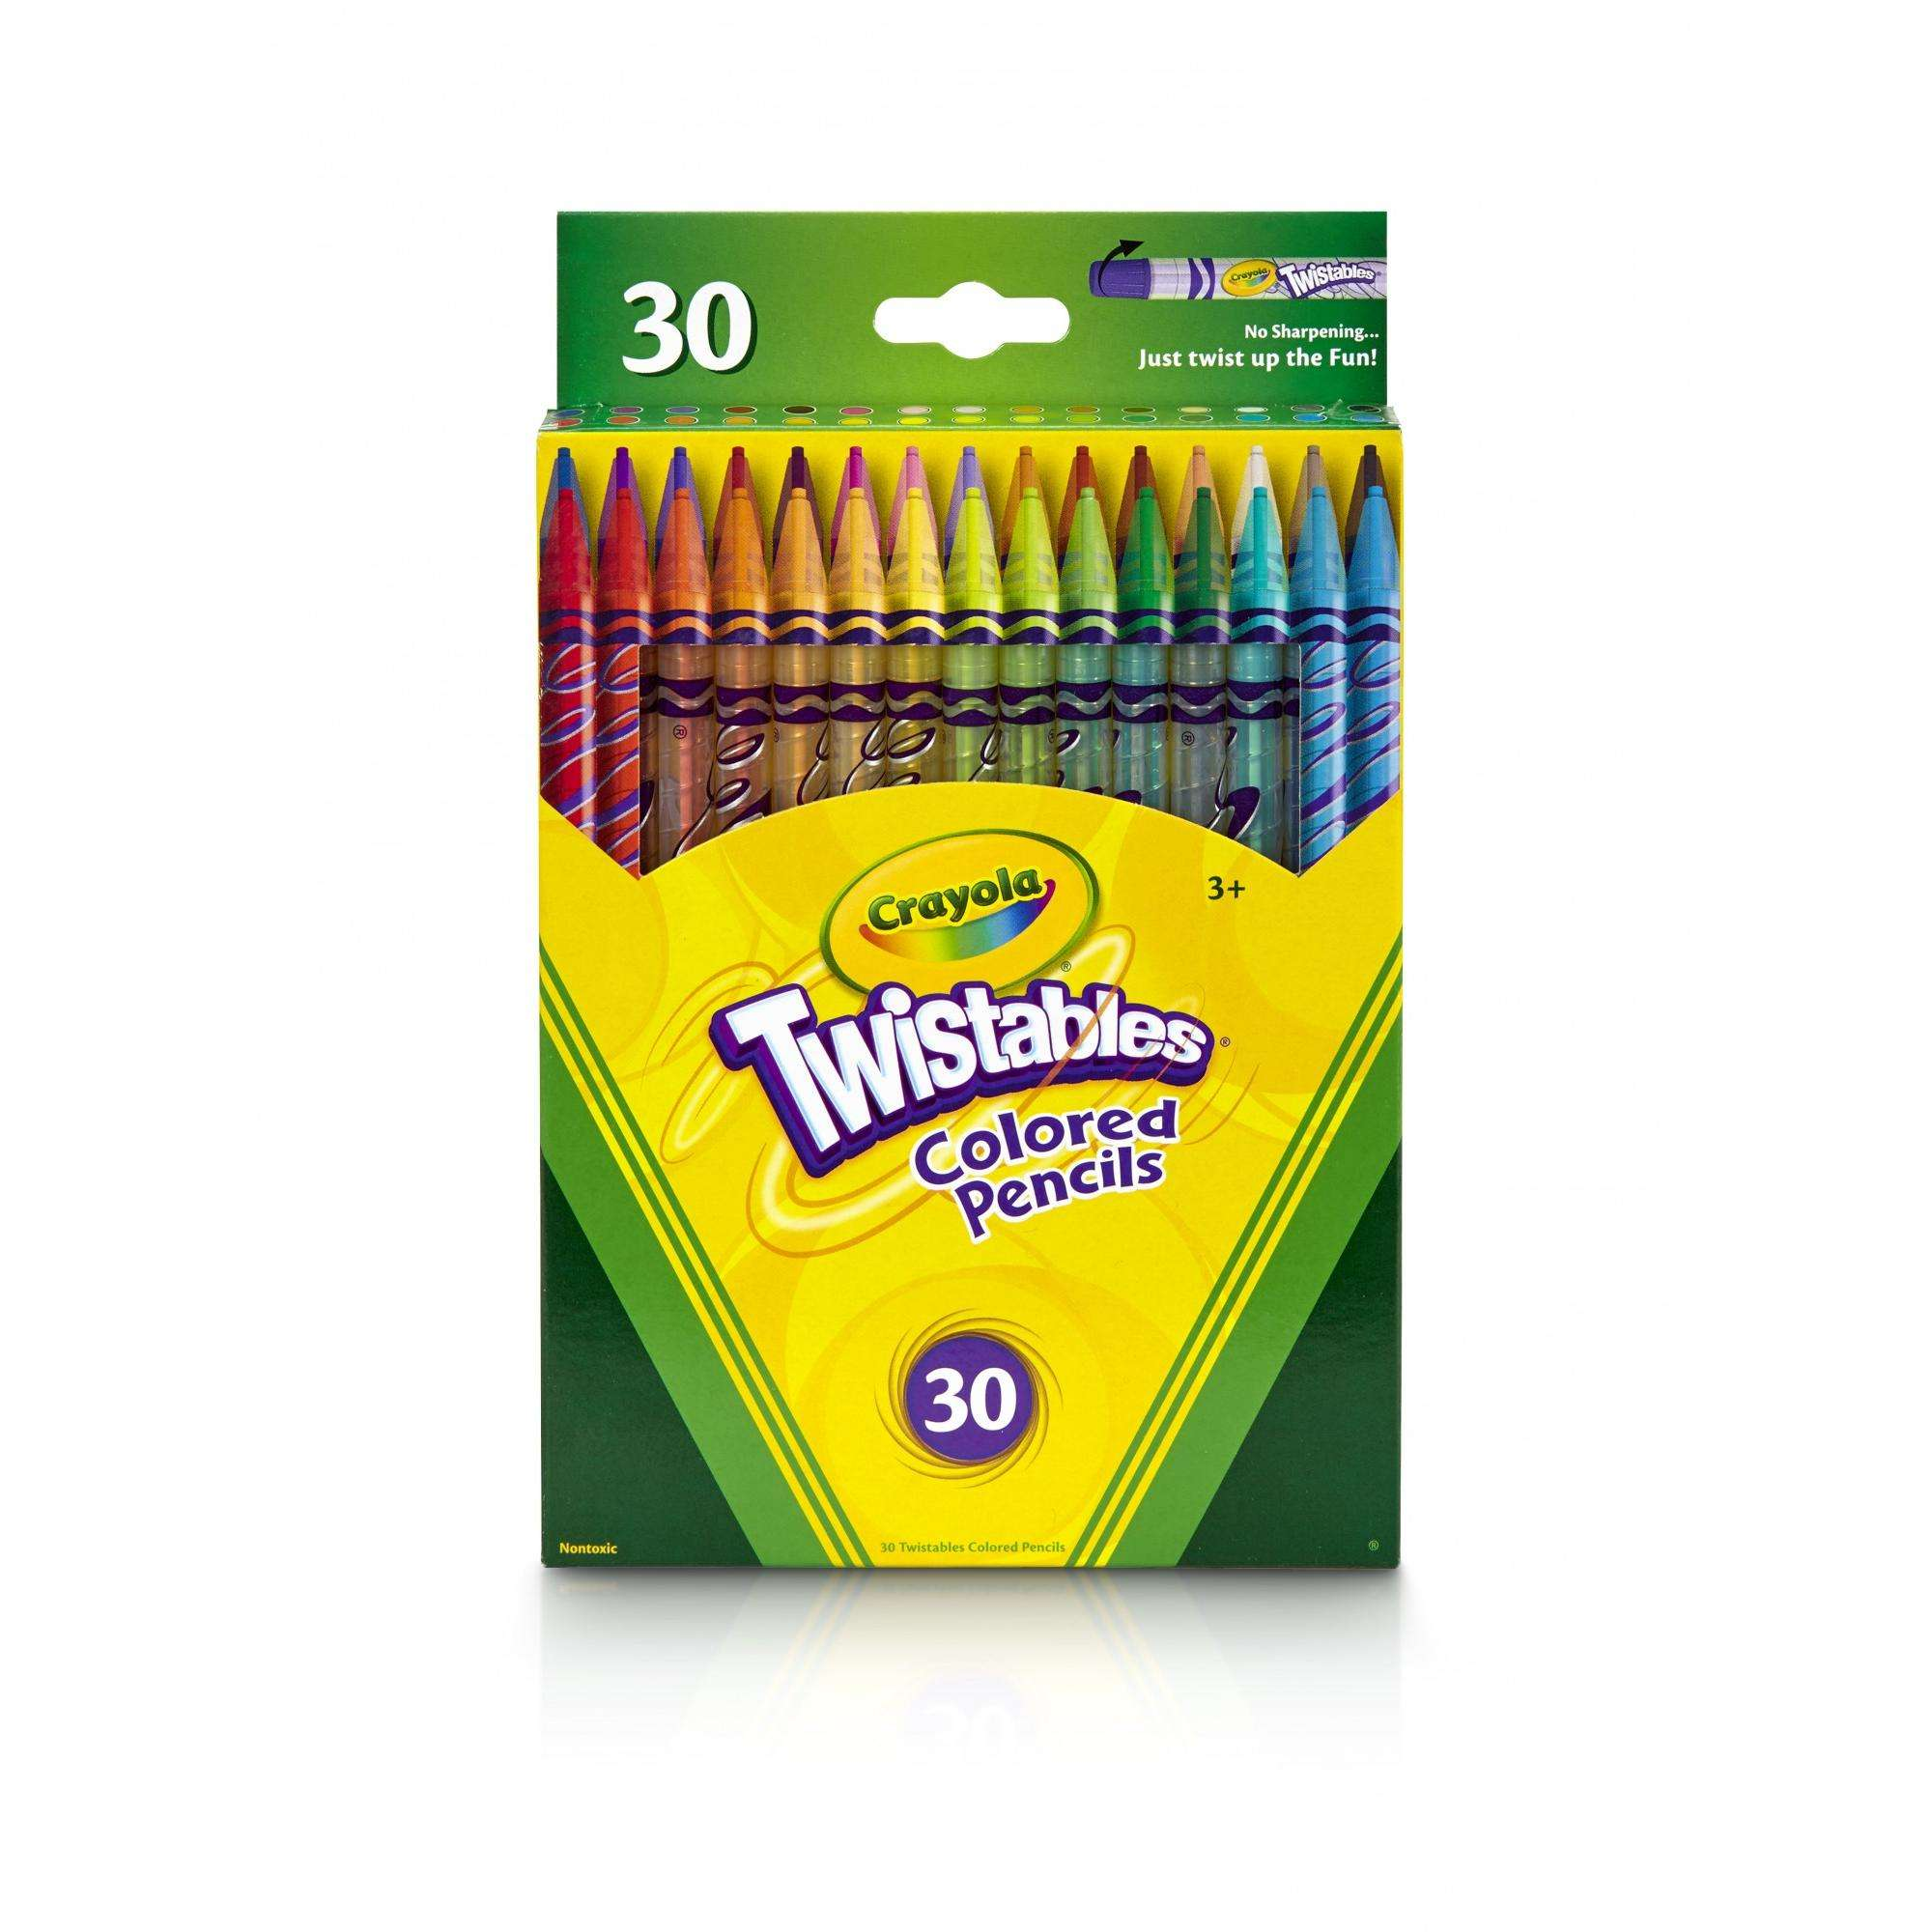 Crayola 30 Count Twistable Colored Pencils by Crayola